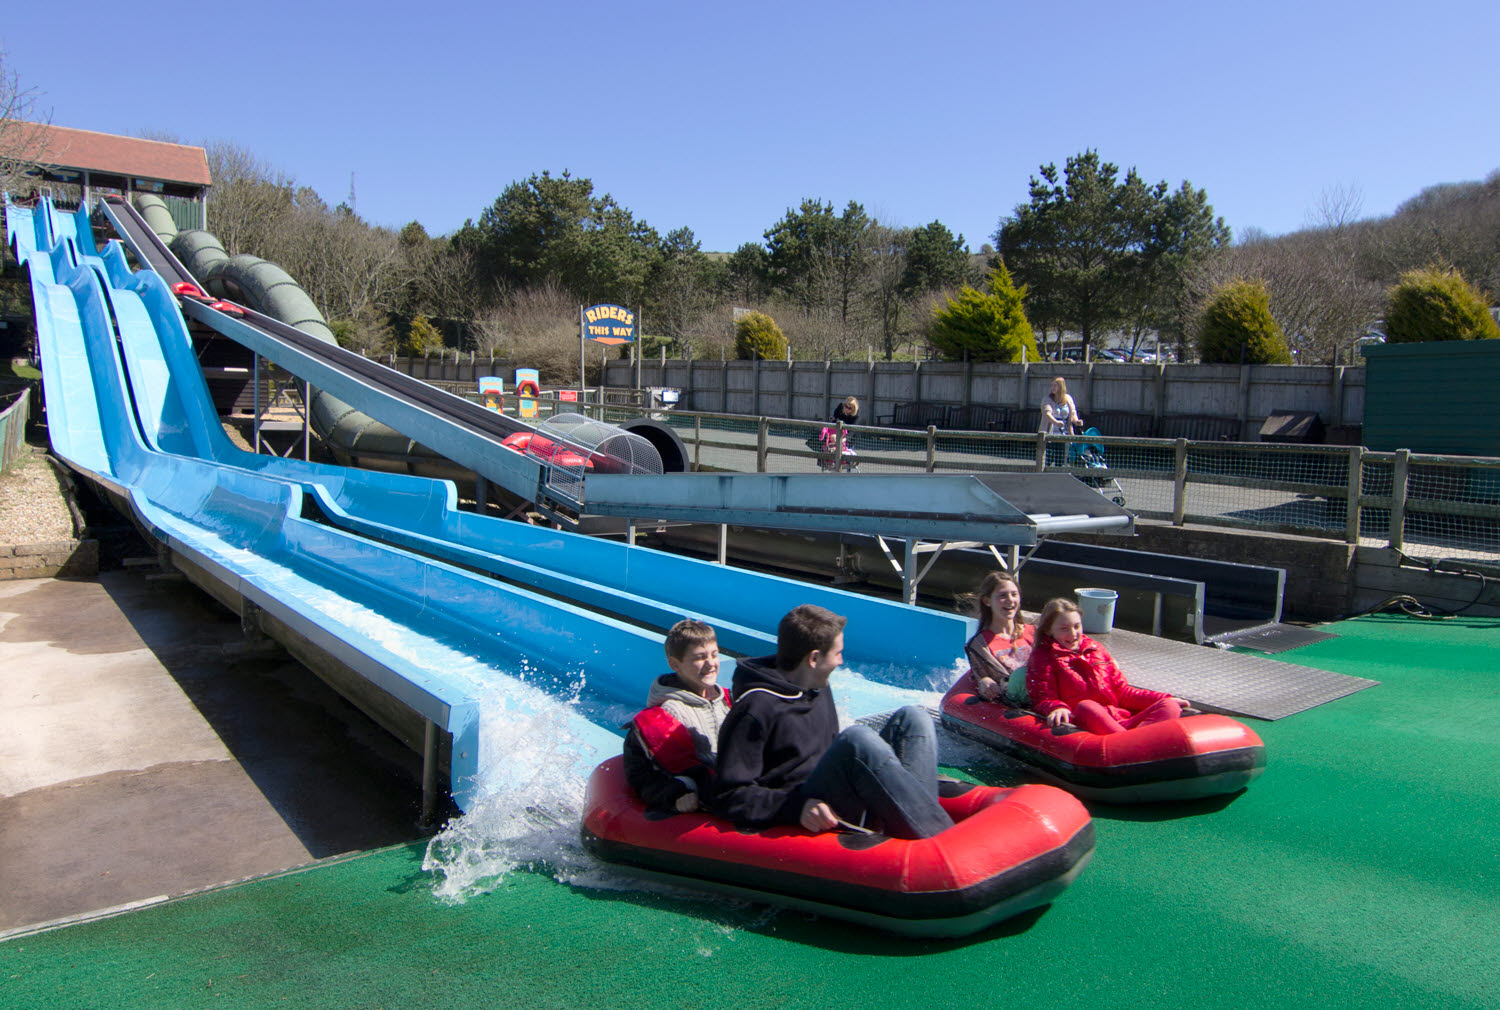 Blackgang Chine IoW waterslide